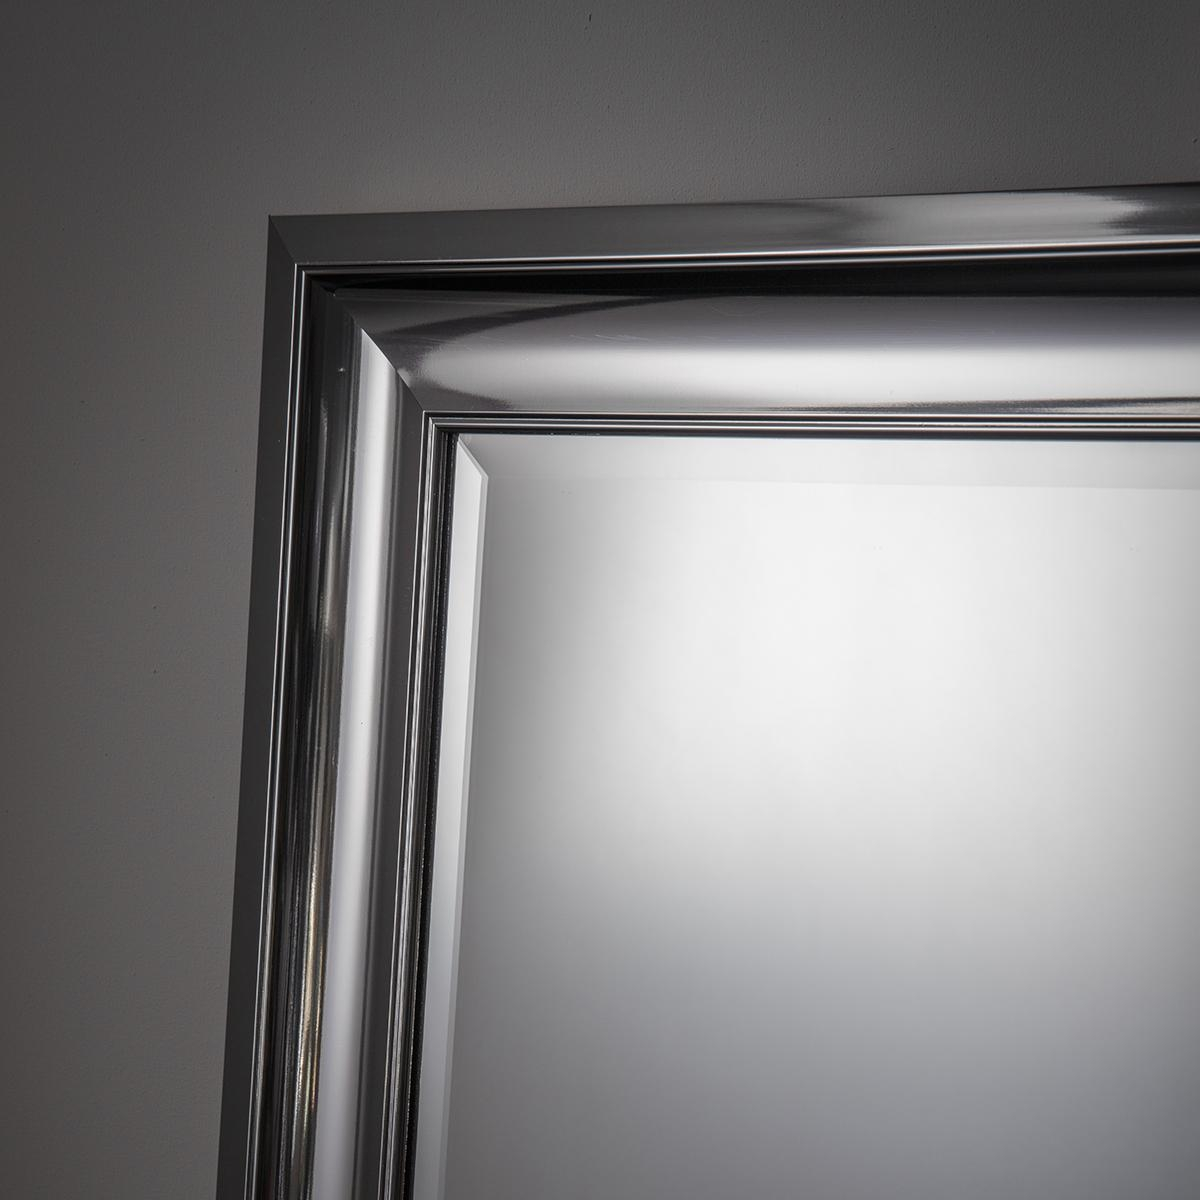 Chrome Effect Modern Rectangular Mirror 106 X 76Cm Chrome Effect With Chrome Mirrors (View 11 of 20)